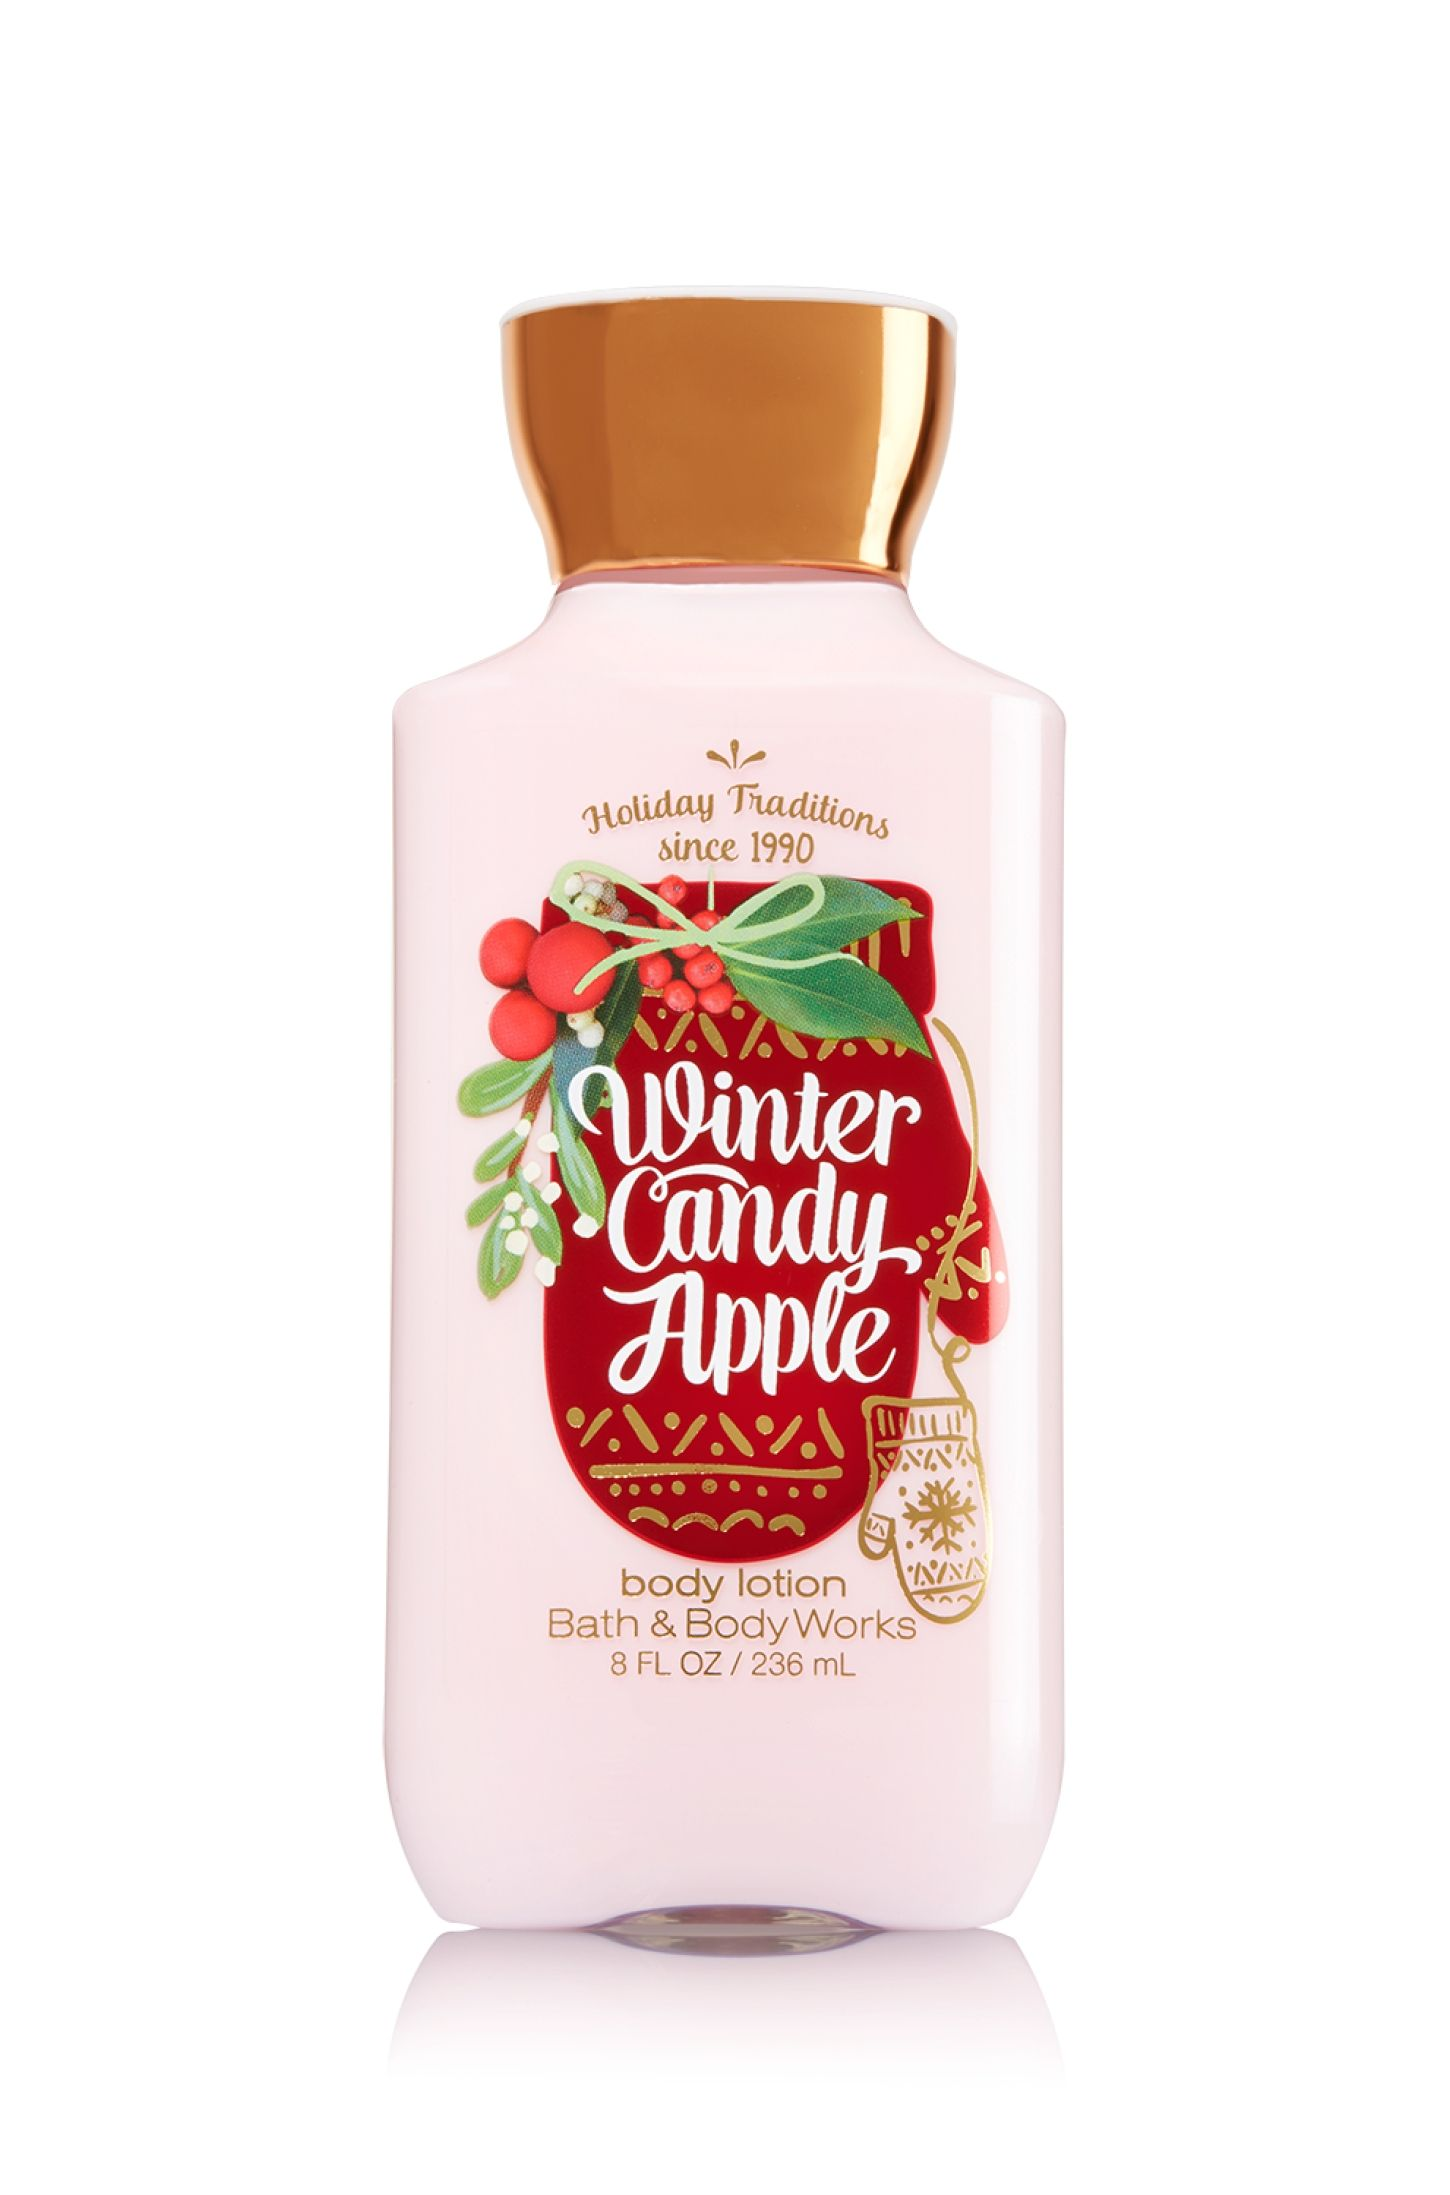 Health amp beauty gt bath amp body gt body lotions amp moisturizers - Winter Candy Apple Body Lotion Signature Collection Bath Body Works